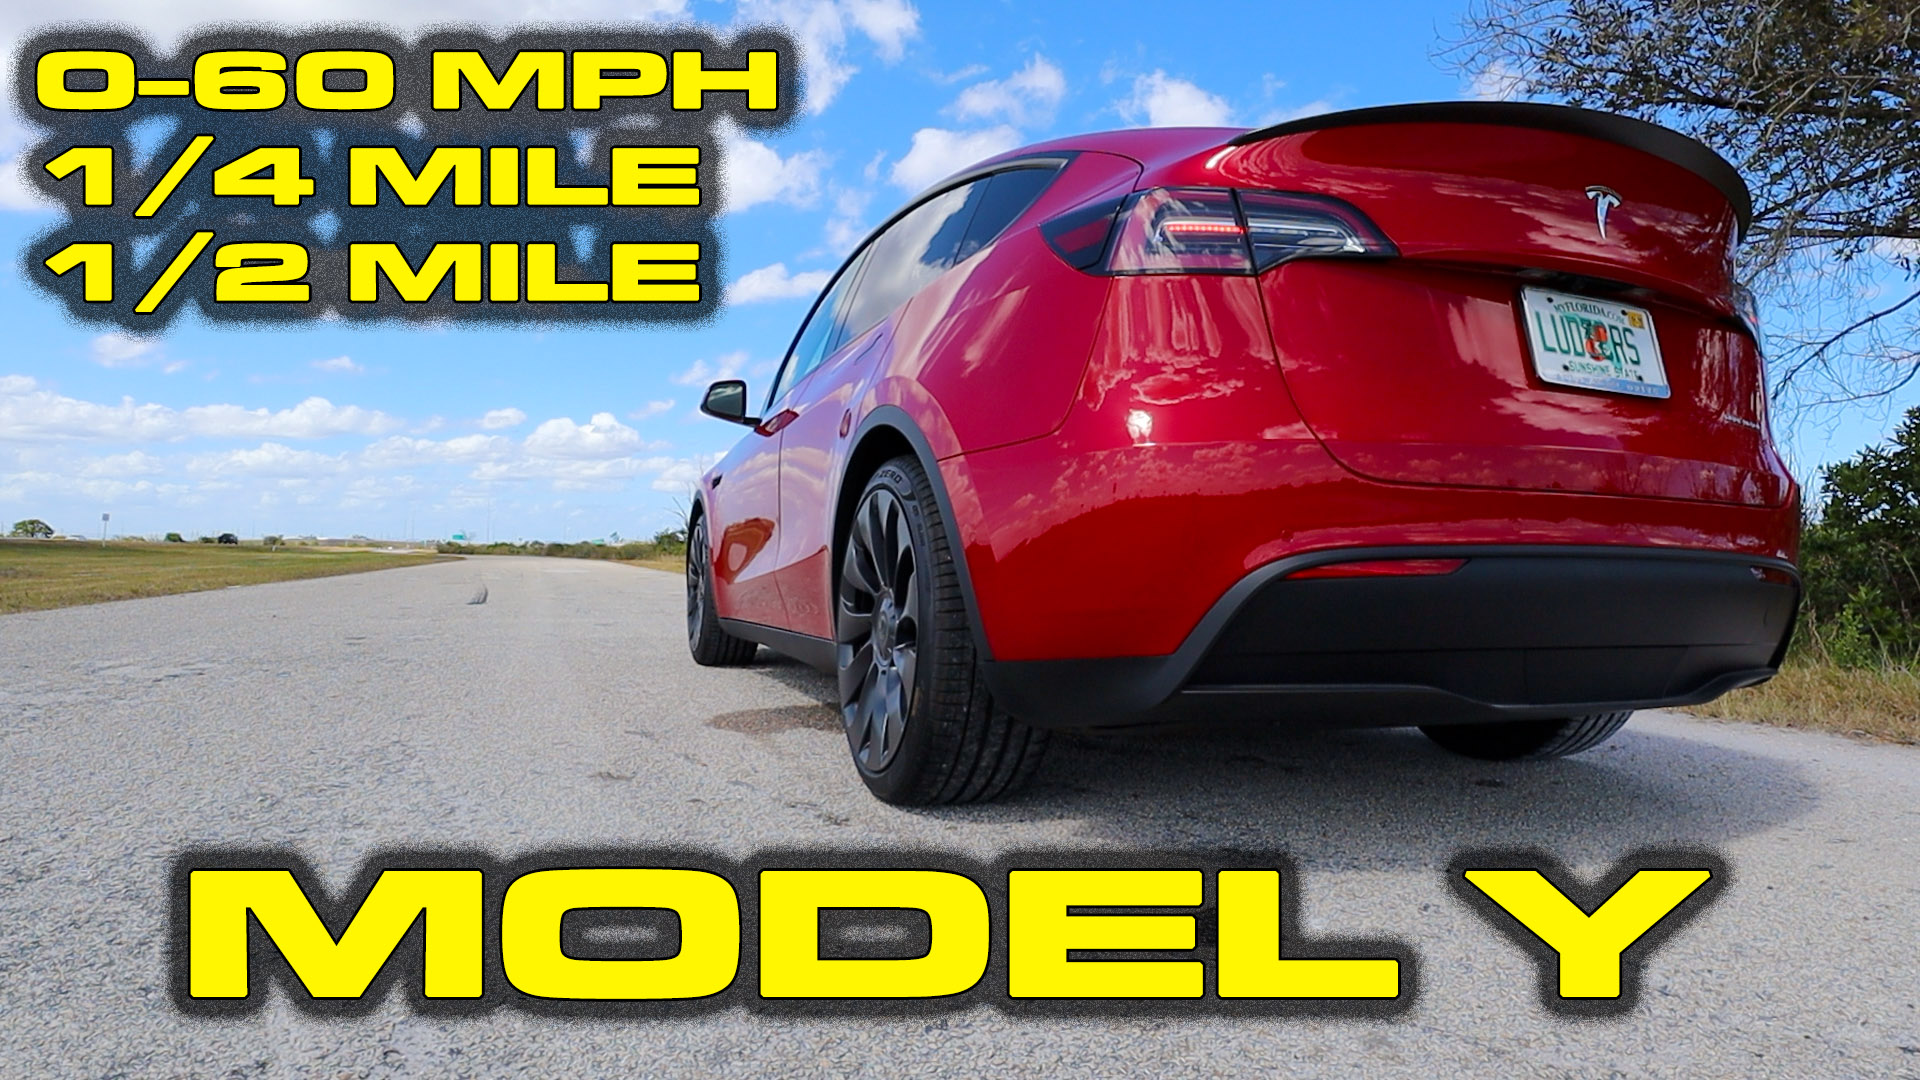 Tesla Model Y Performance Review and Testing; 0-60, 1/4 mile, 1/2 Mile